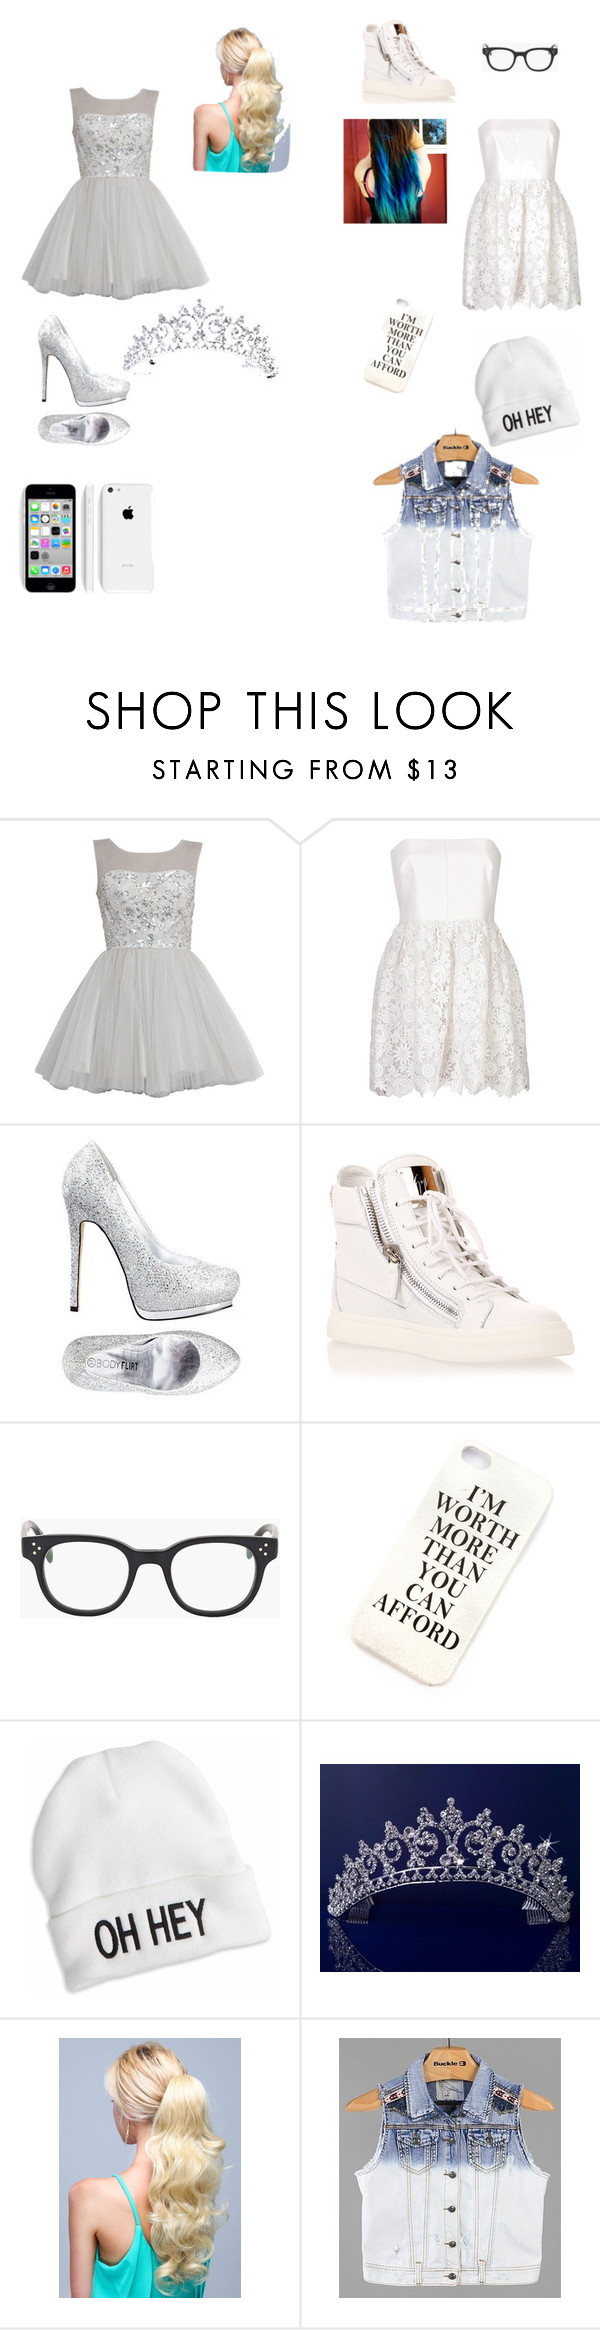 """""""Liv And Maddie LMAOOO"""" by taylorthecreatorr ❤ liked on Polyvore featuring Valentino, Giuseppe Zanotti, Oliver Peoples, American Eagle Outfitters and White Crow"""